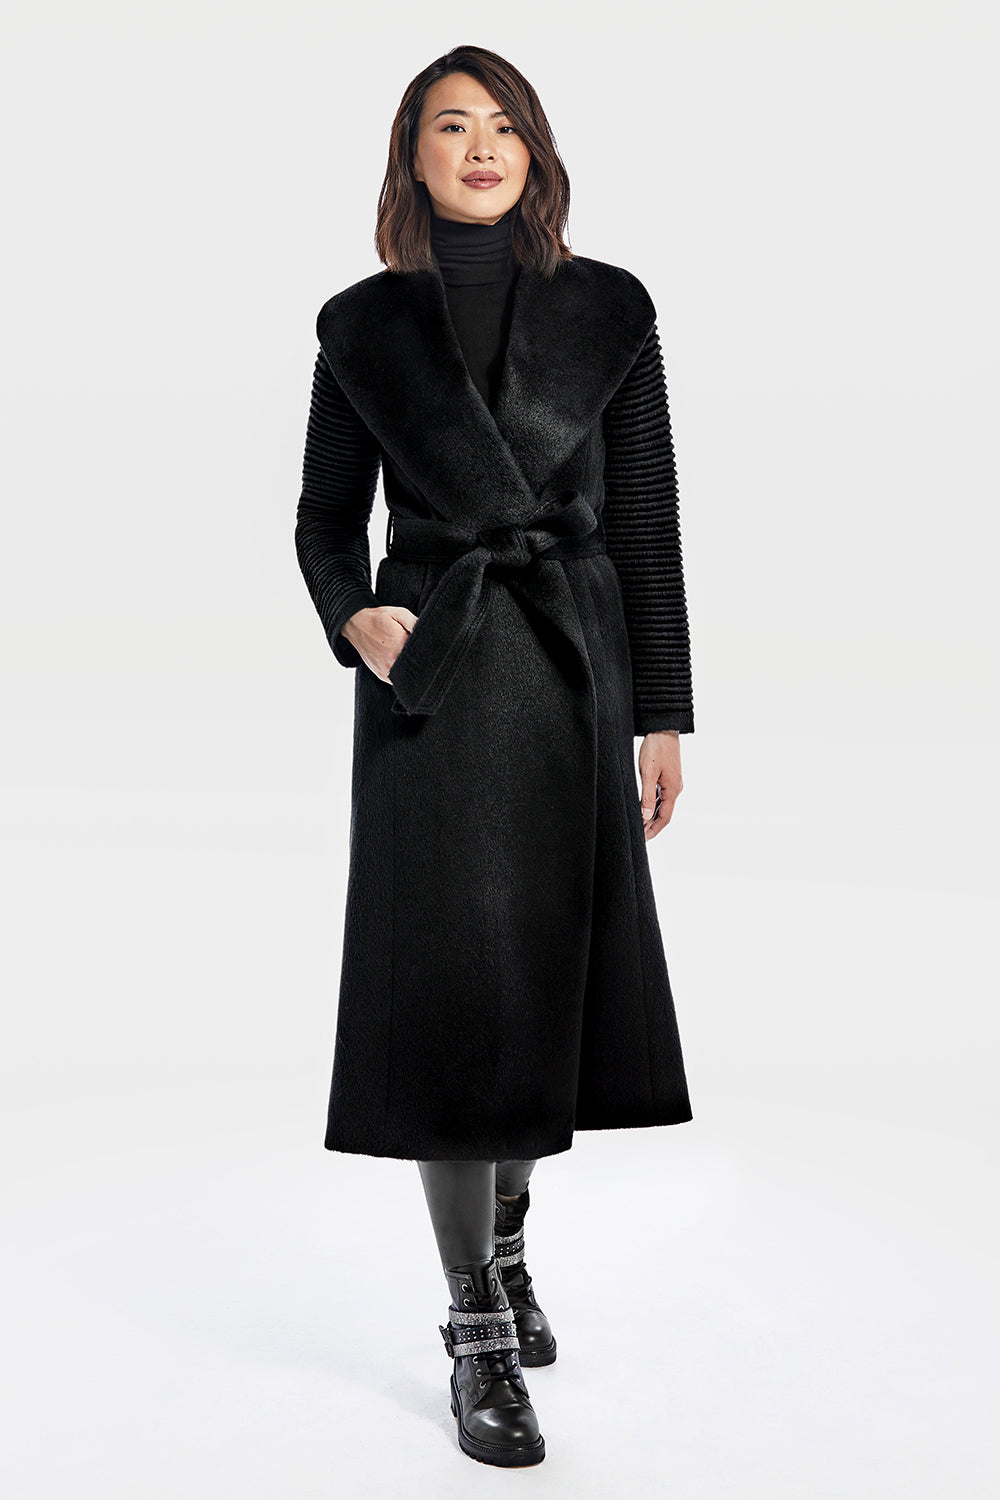 Sentaler Suri Alpaca Long Shawl Collar Wrap Coat with Ribbed Sleeves featured in Suri Alpaca and available in Black. Seen from front.